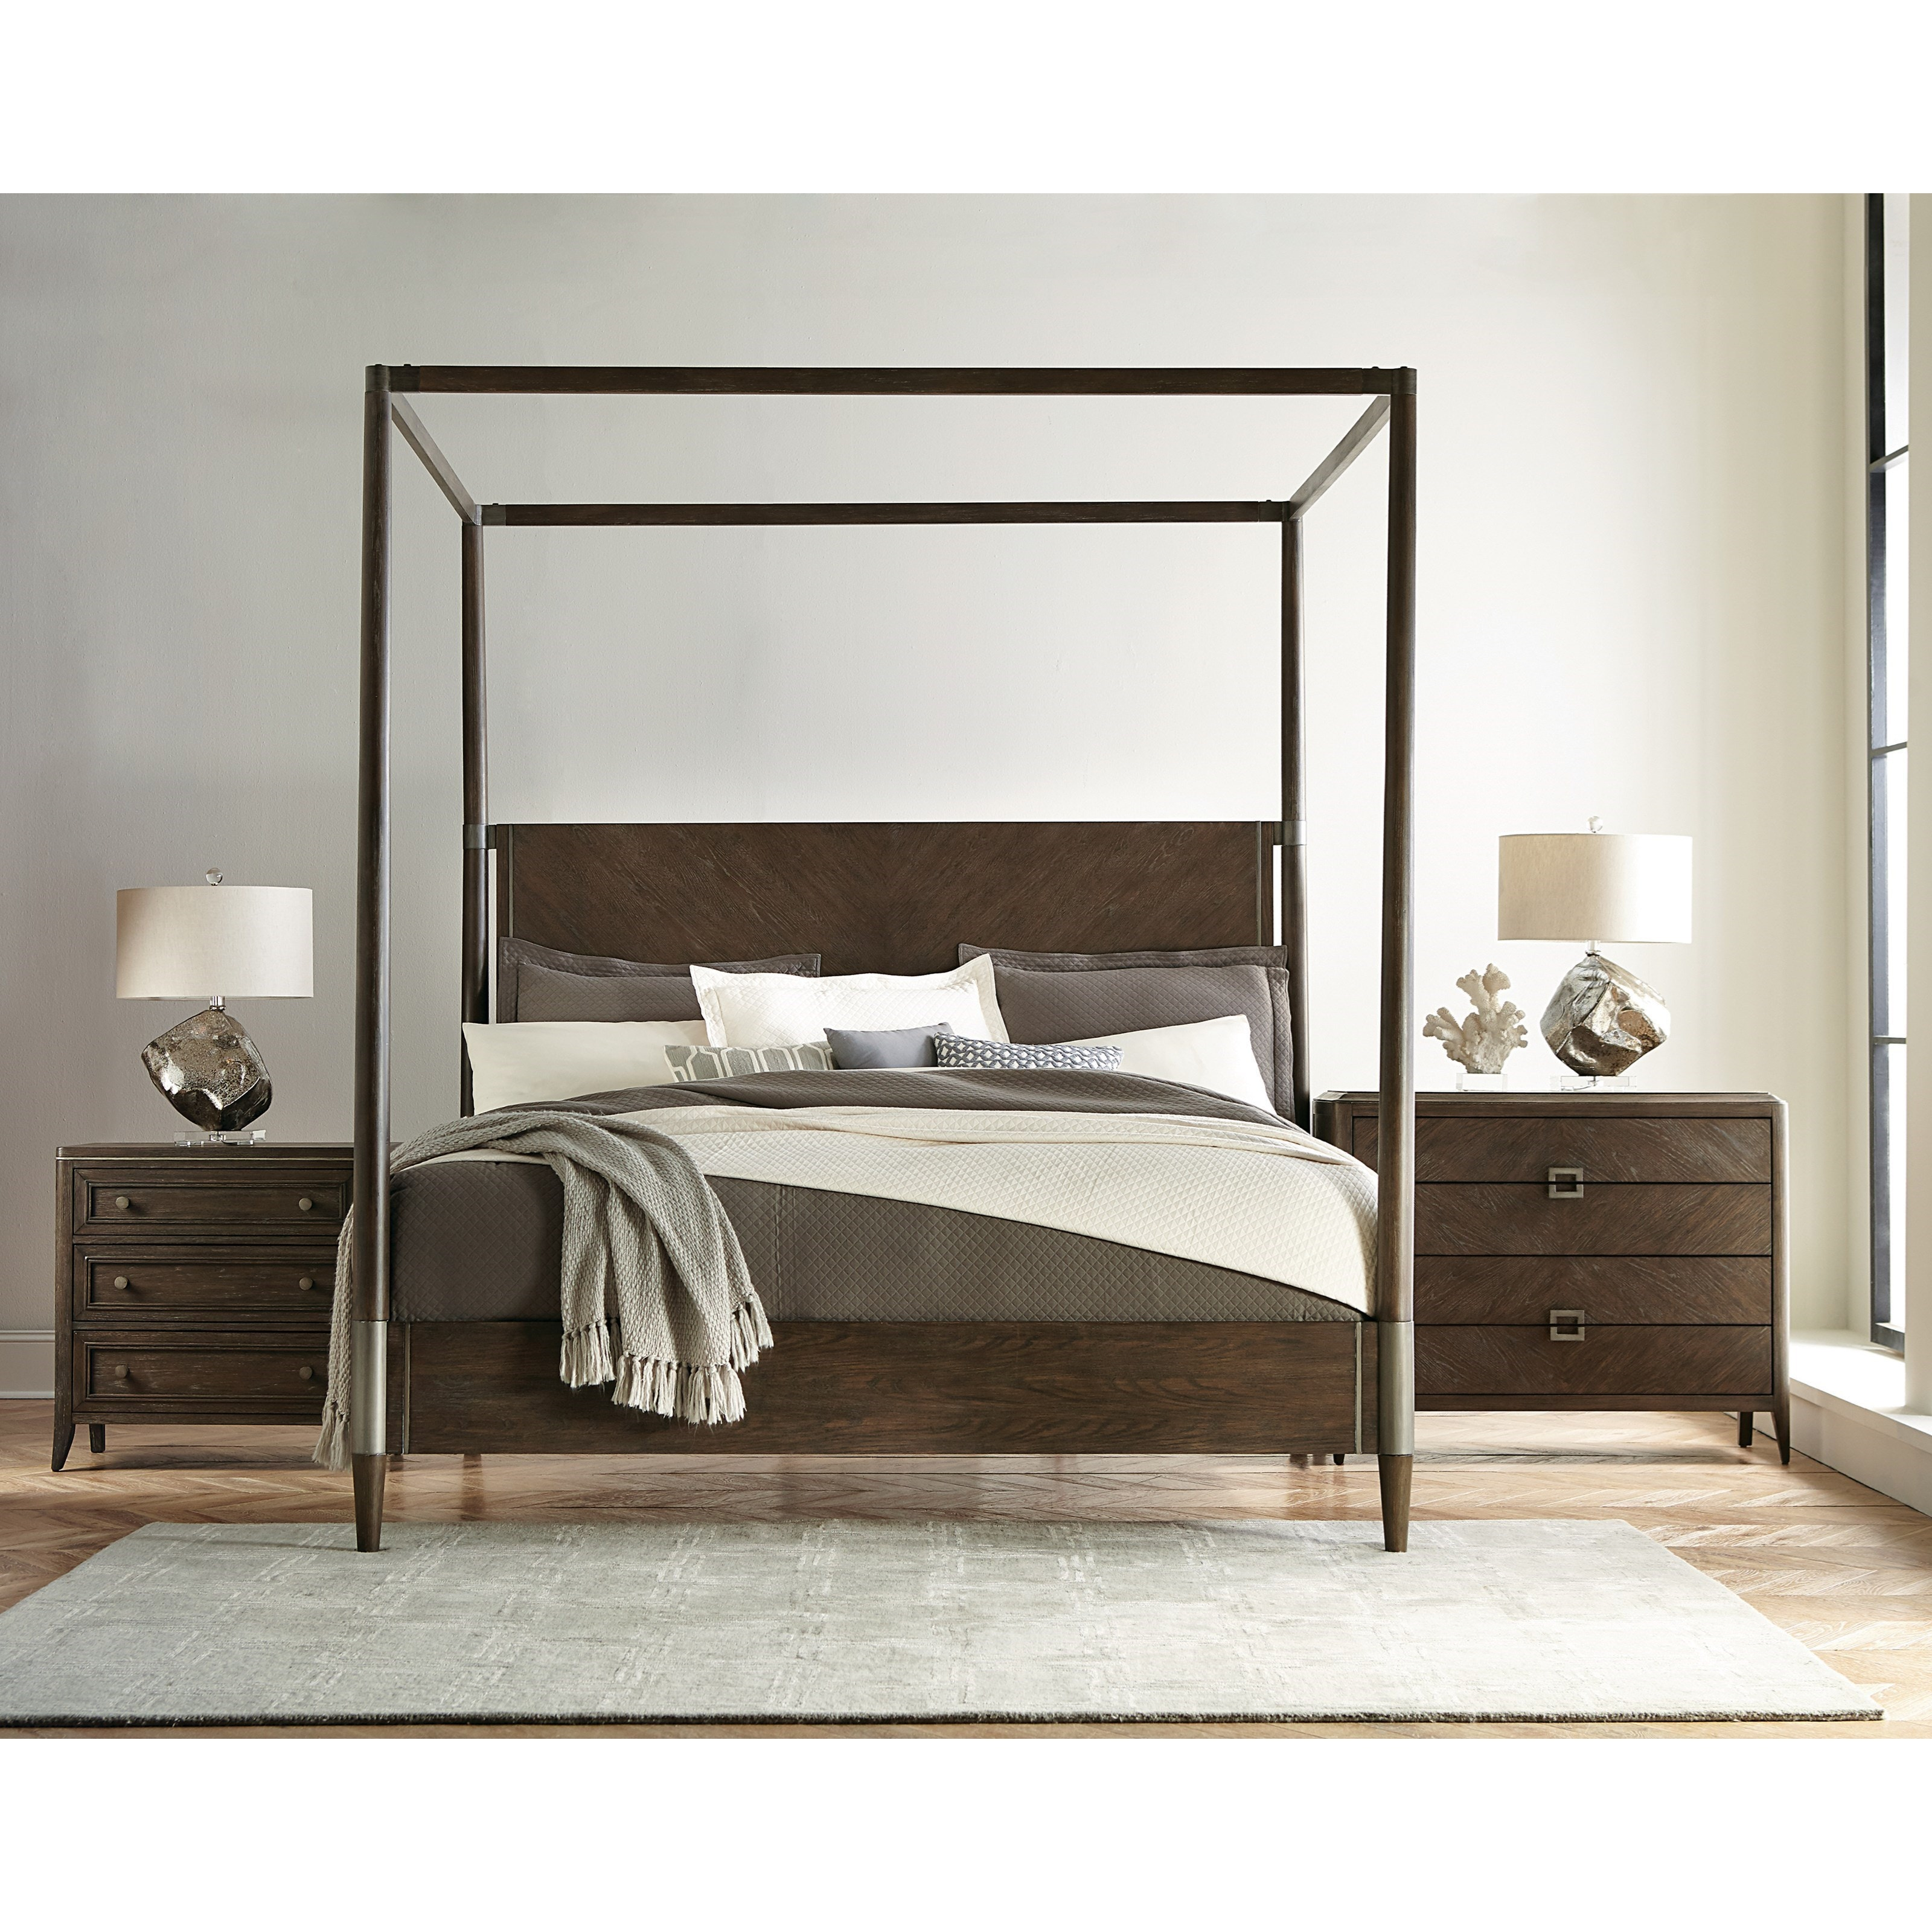 Bedroom Furniture - Beds, Dressers, Chairs | Norwood